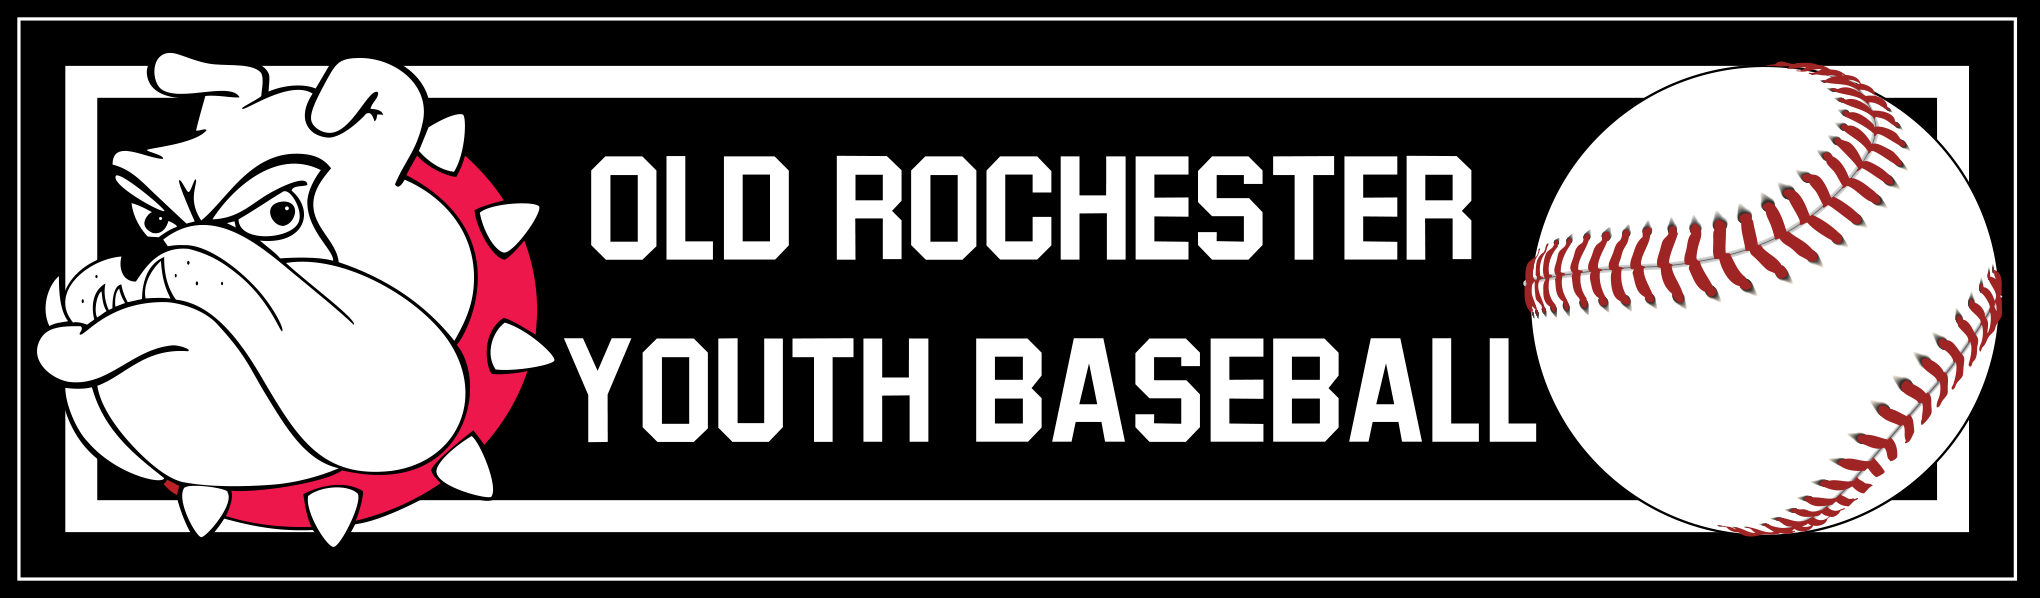 Old Rochester Youth Baseball - Powered by LeagueToolbox